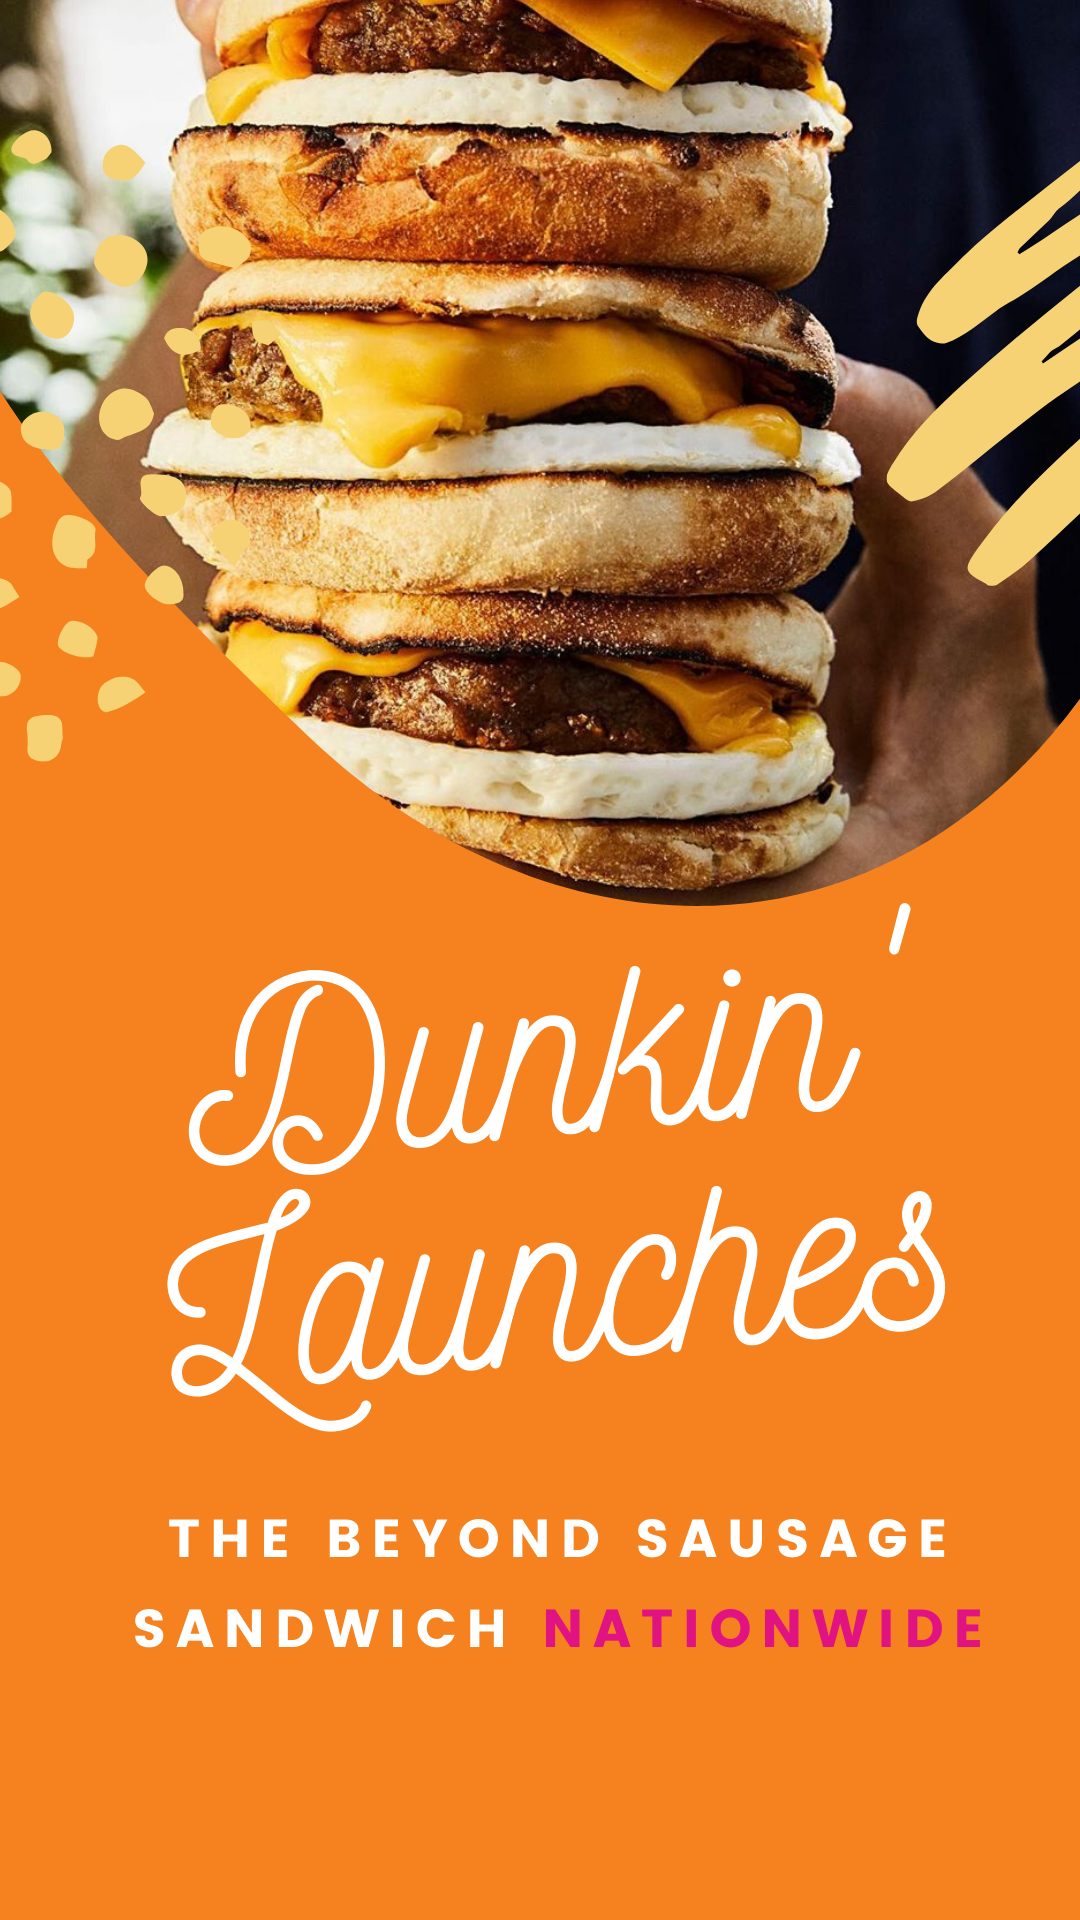 Dunkin' Launches the Beyond Sausage Sandwich Nationwide